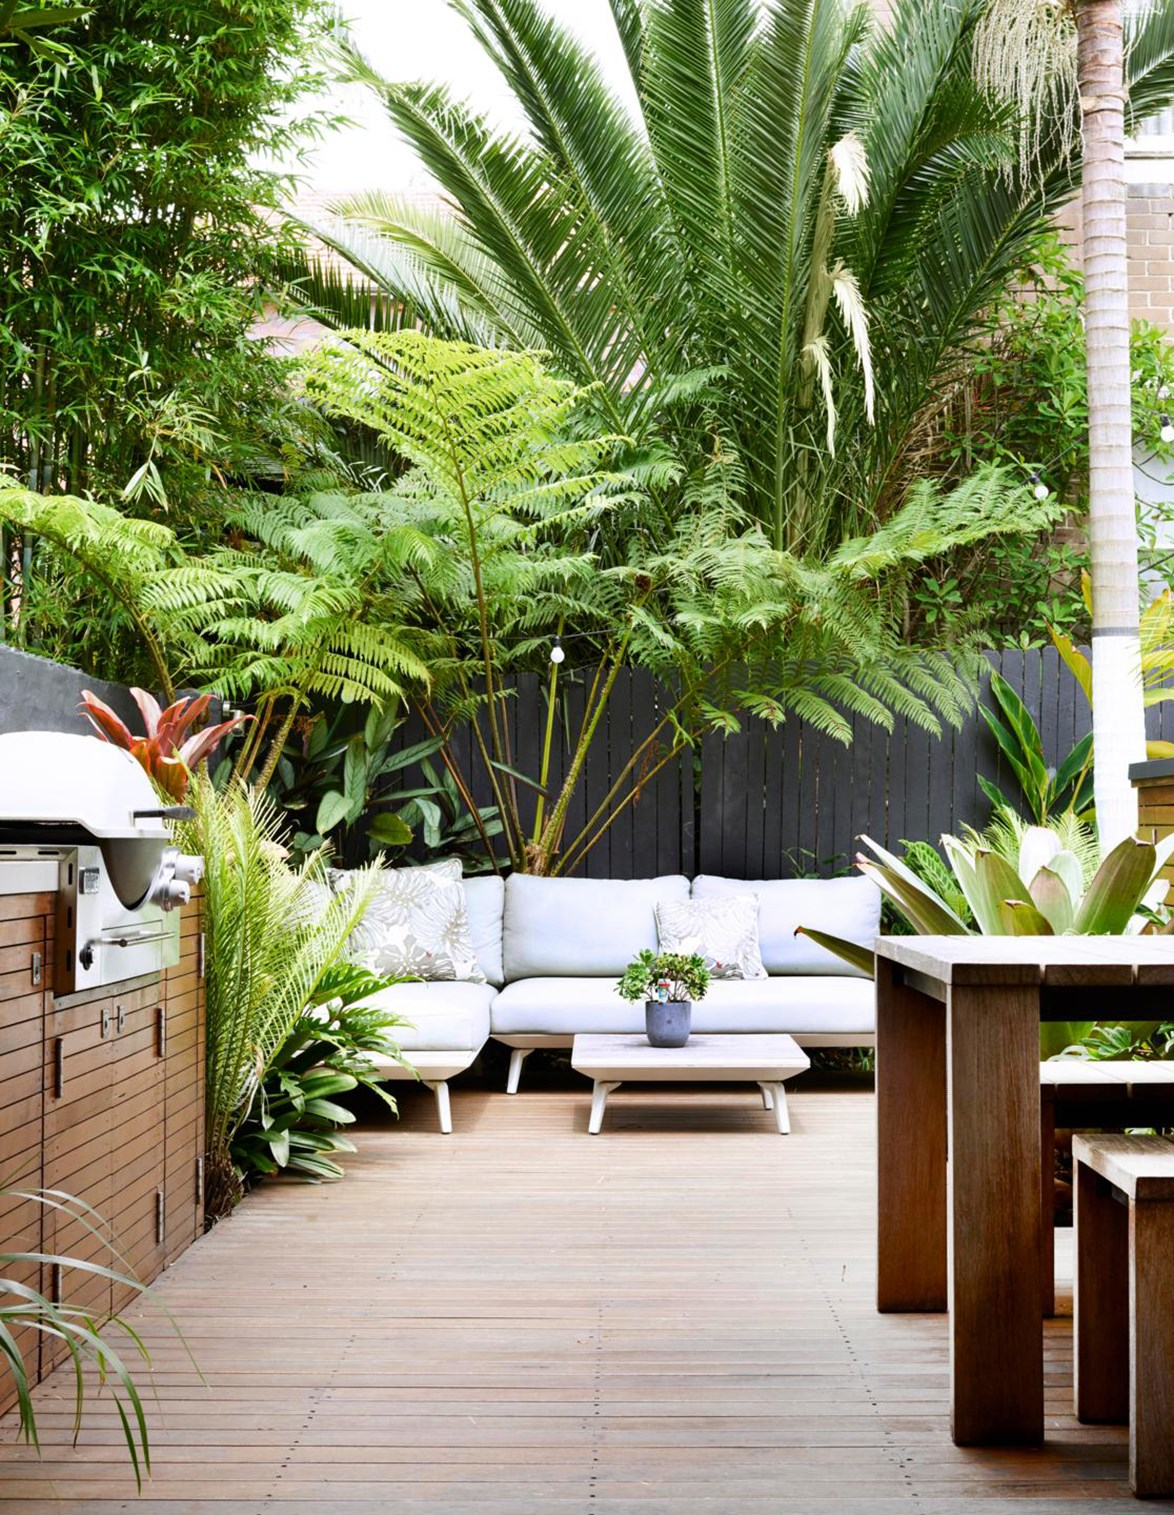 Palm trees and leafy bamboo provide shade for the lower lying plants in this courtyard garden.